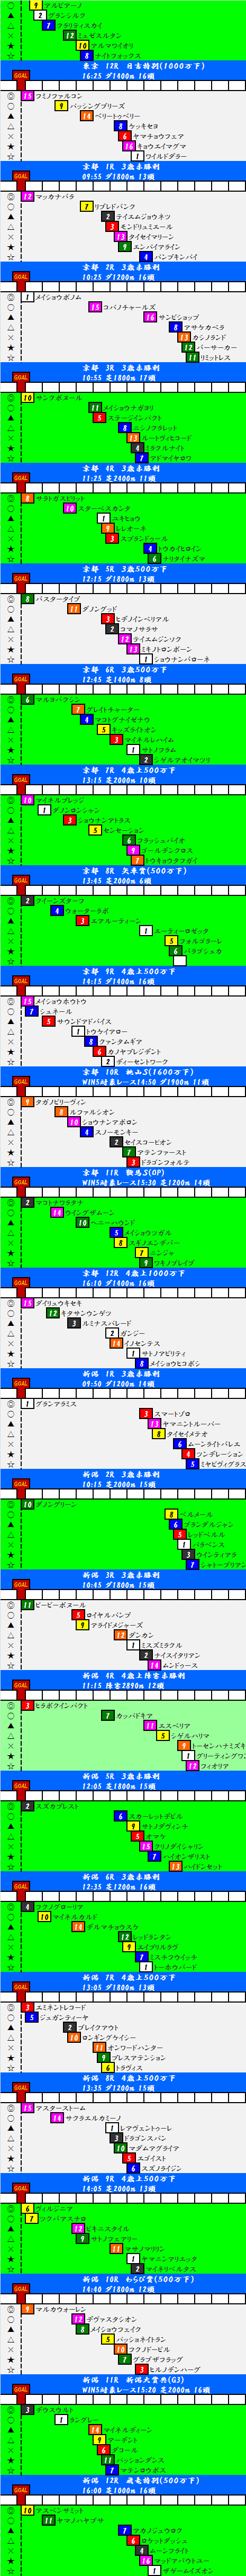 2015051002.png